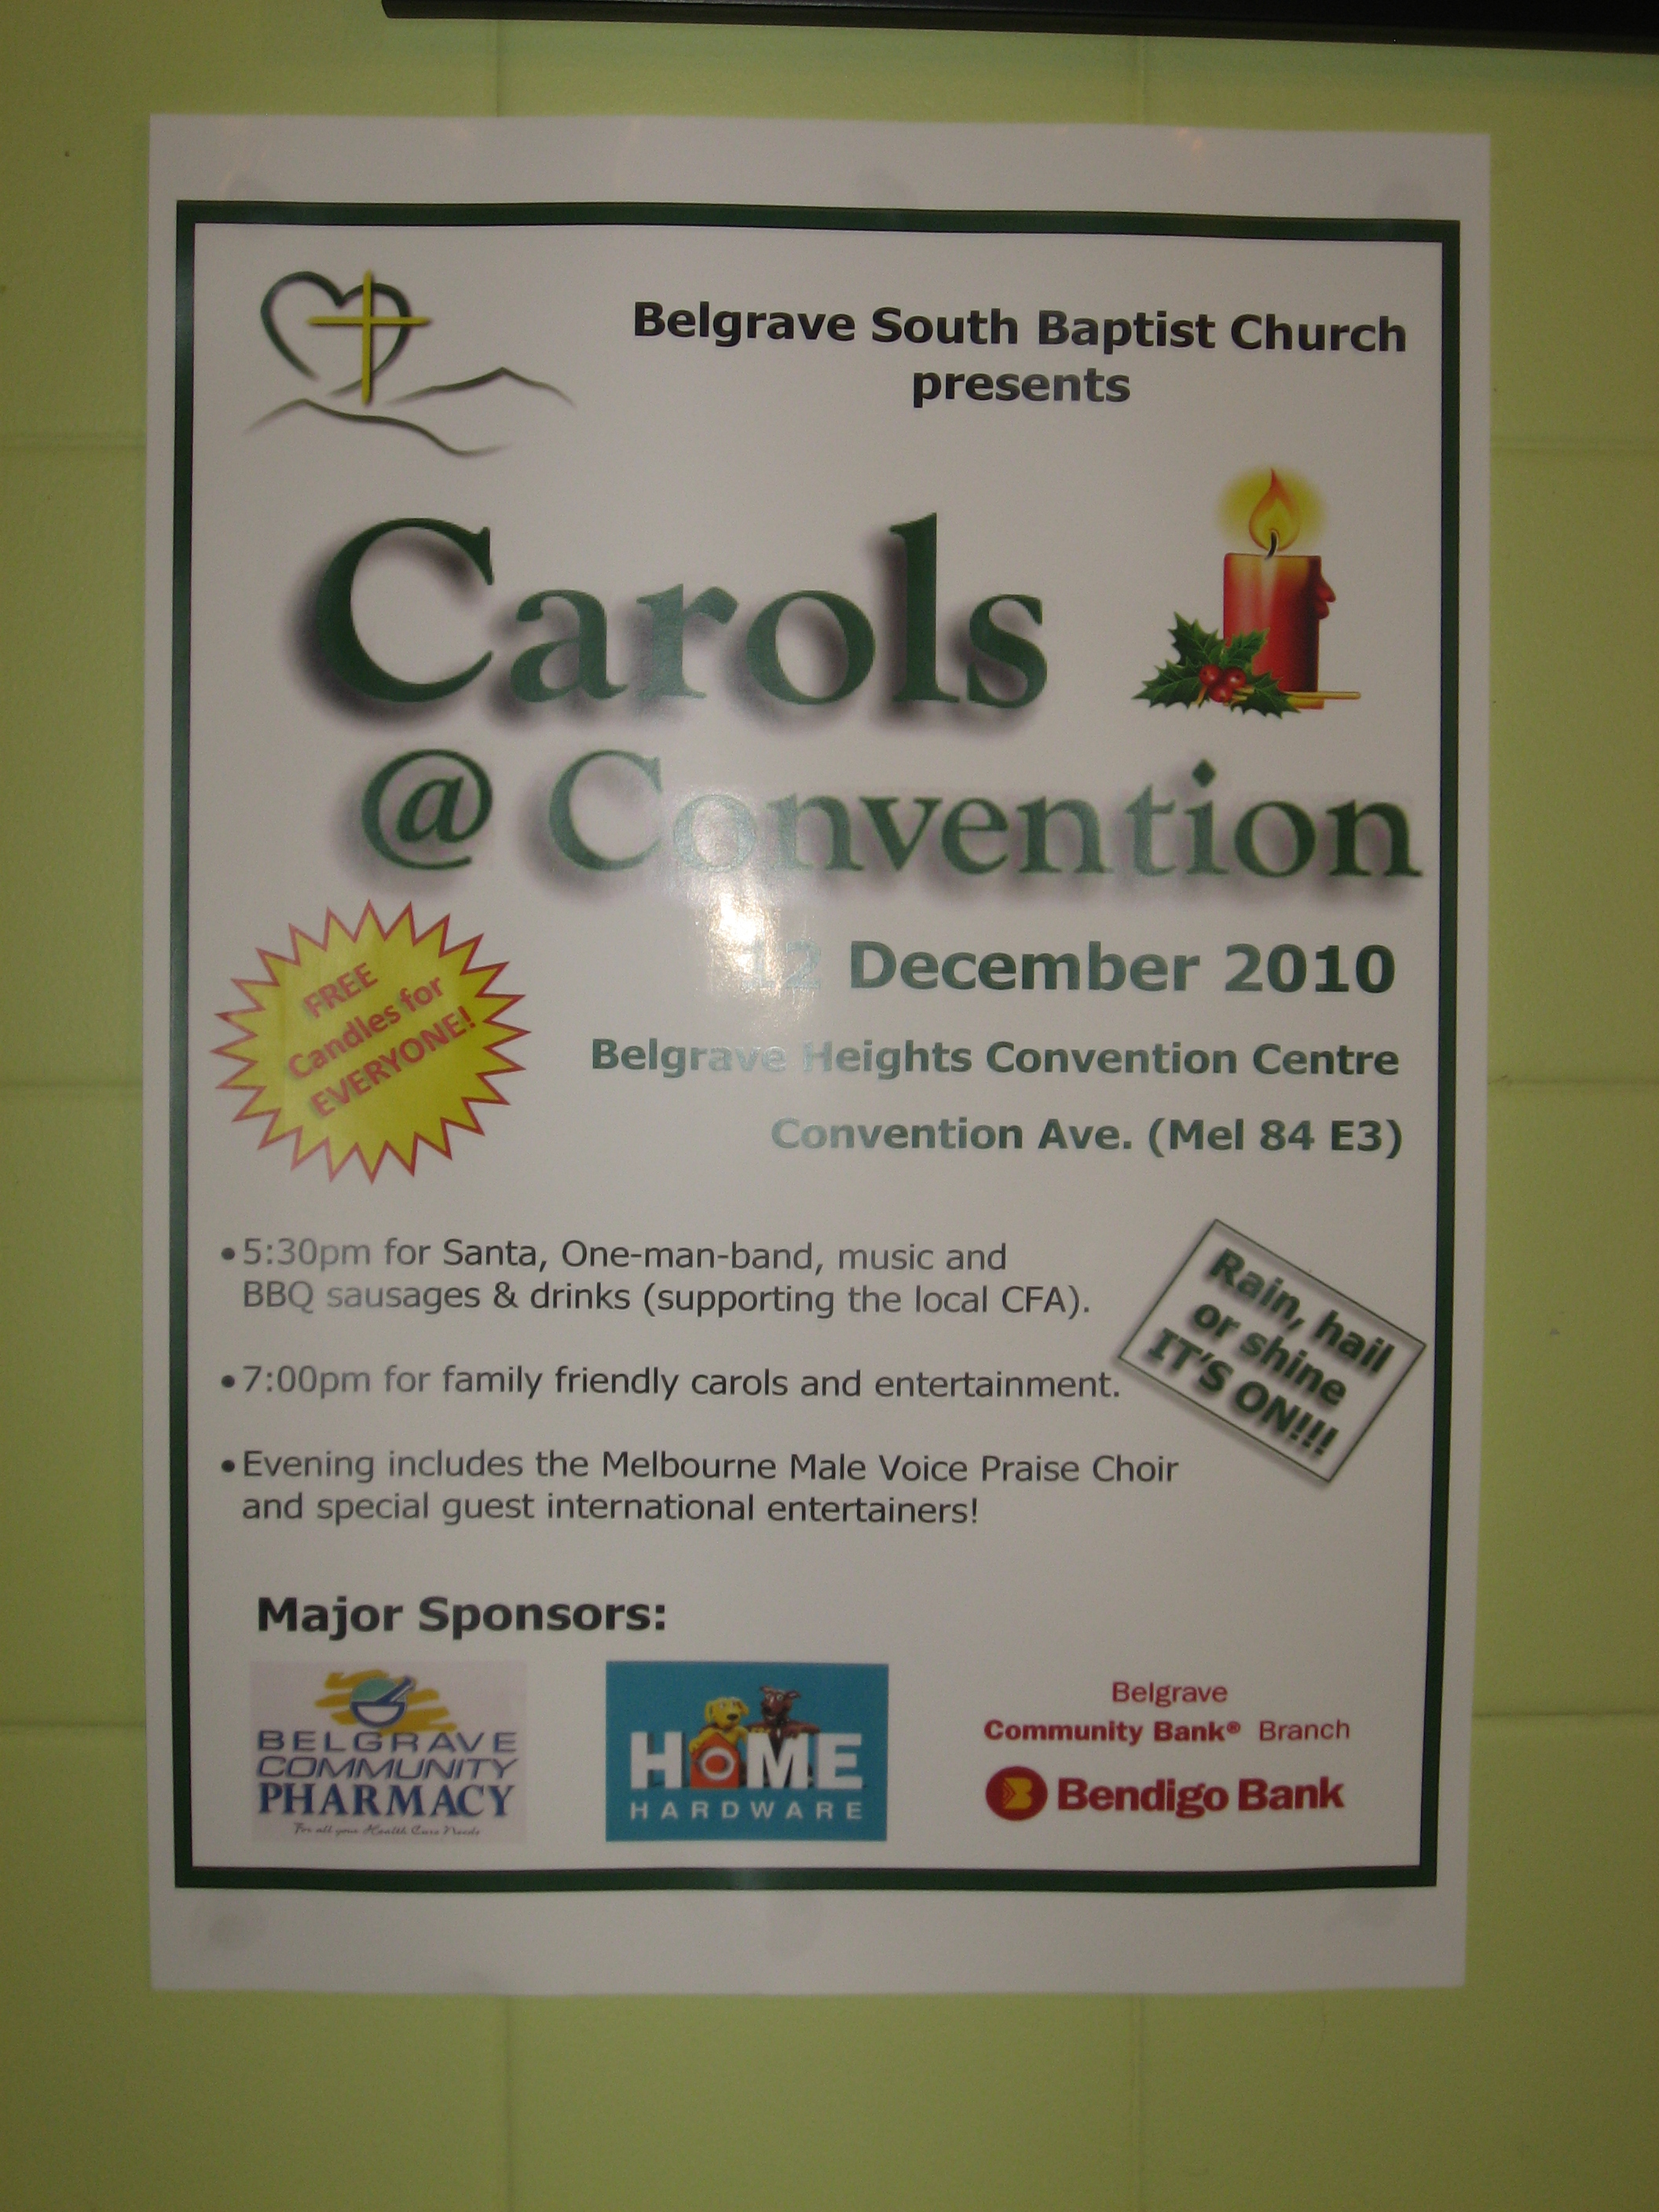 A3 sign used to promote an event